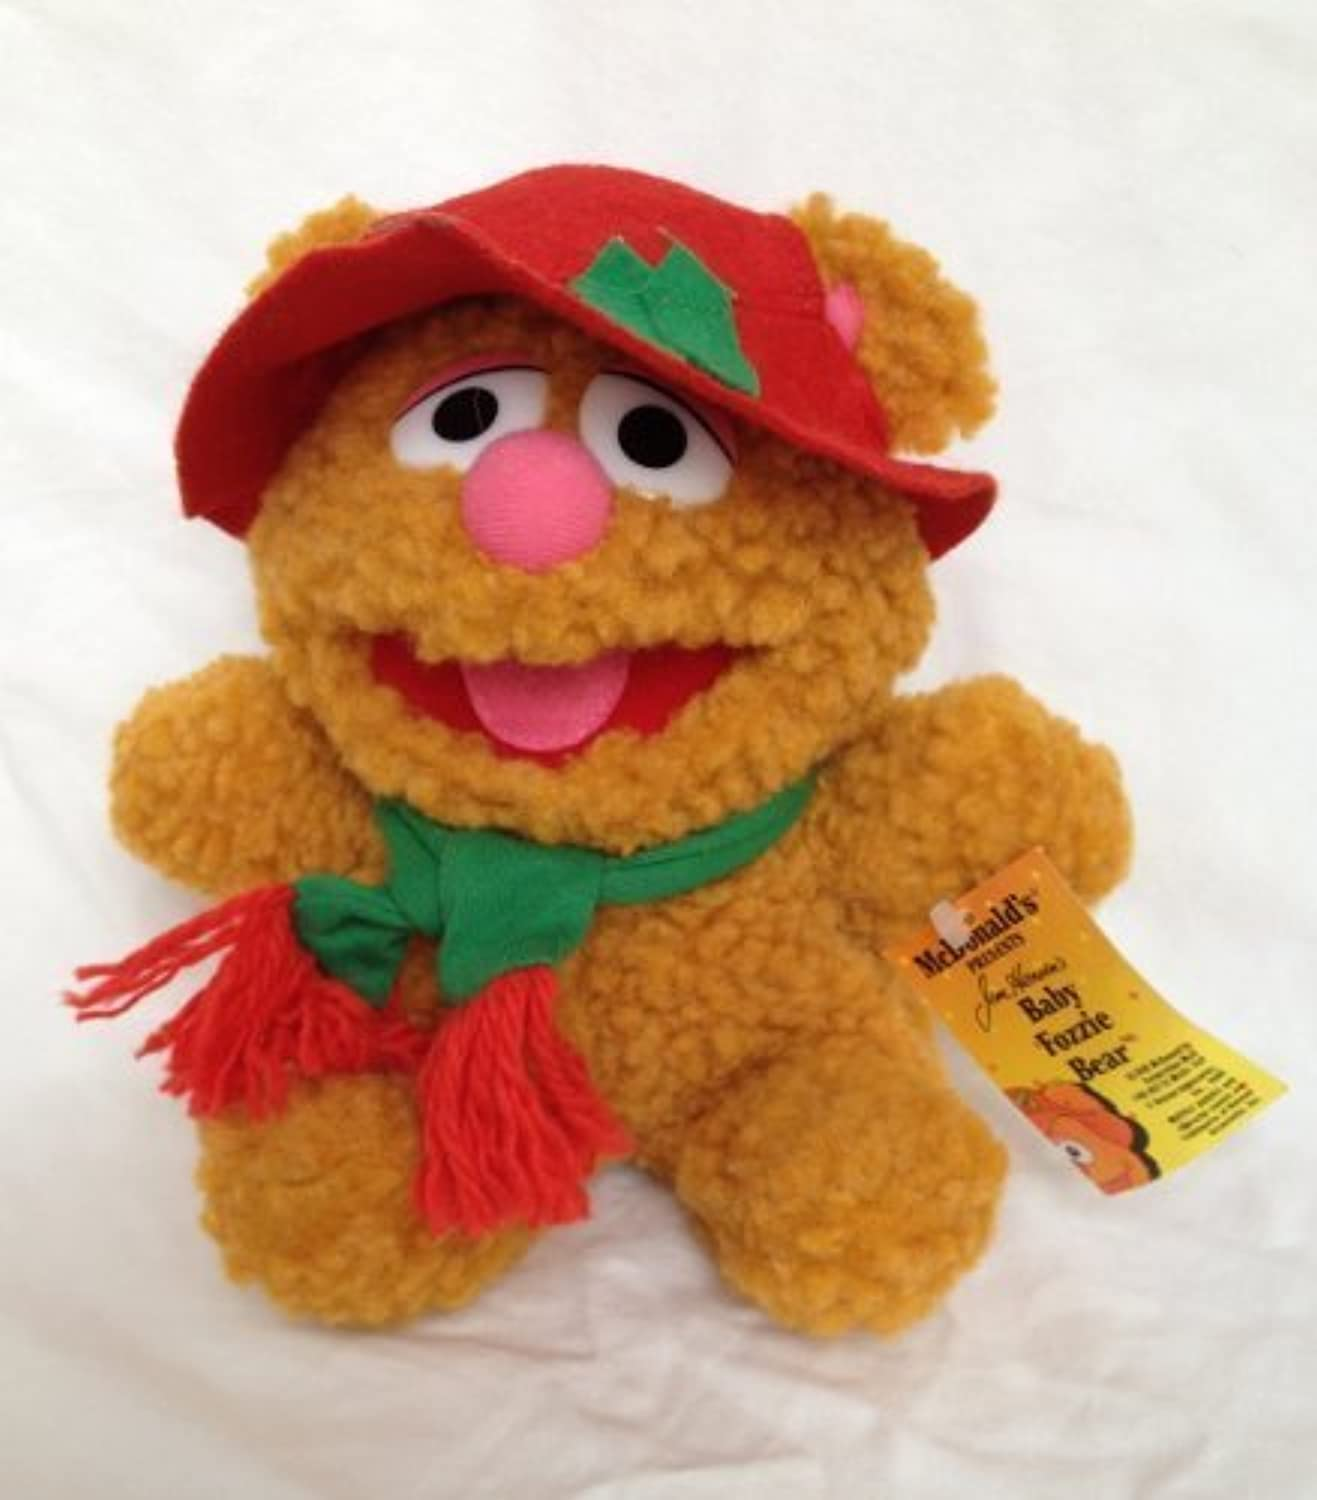 McDonalds Presents Baby Fozzie Bear Vintage Plush Toy by Muppets